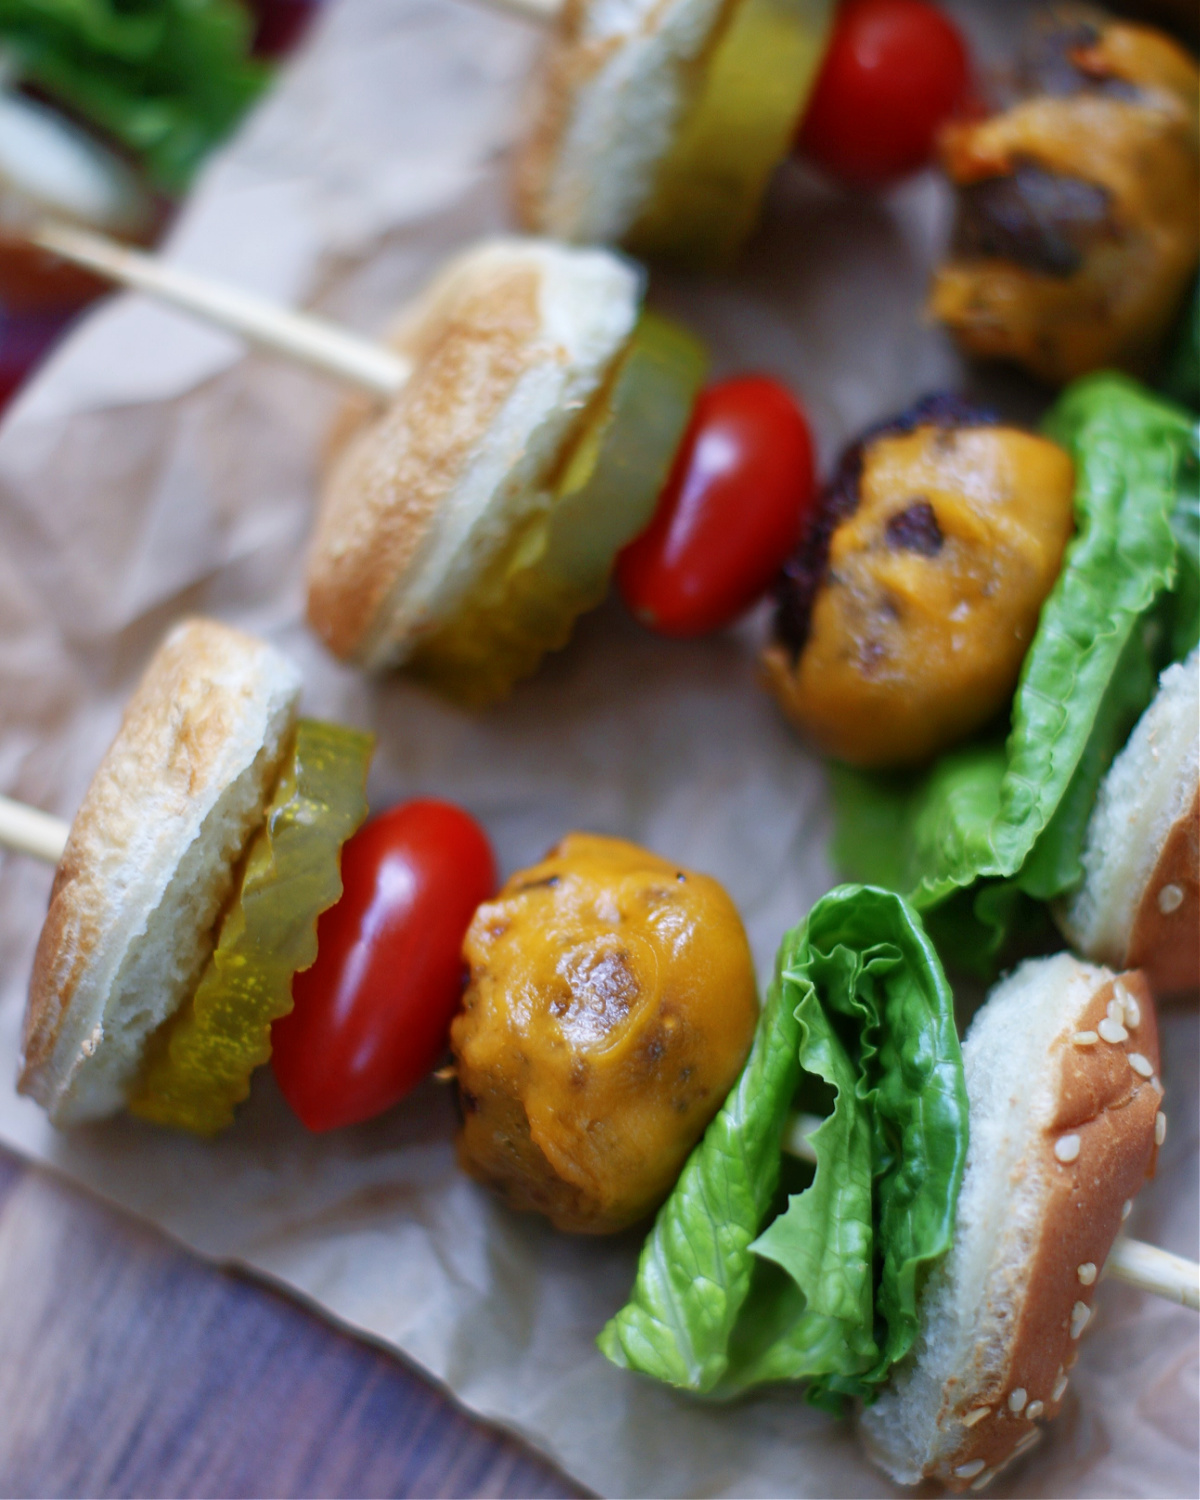 a close up of cheeseburger skewer to show ingredients